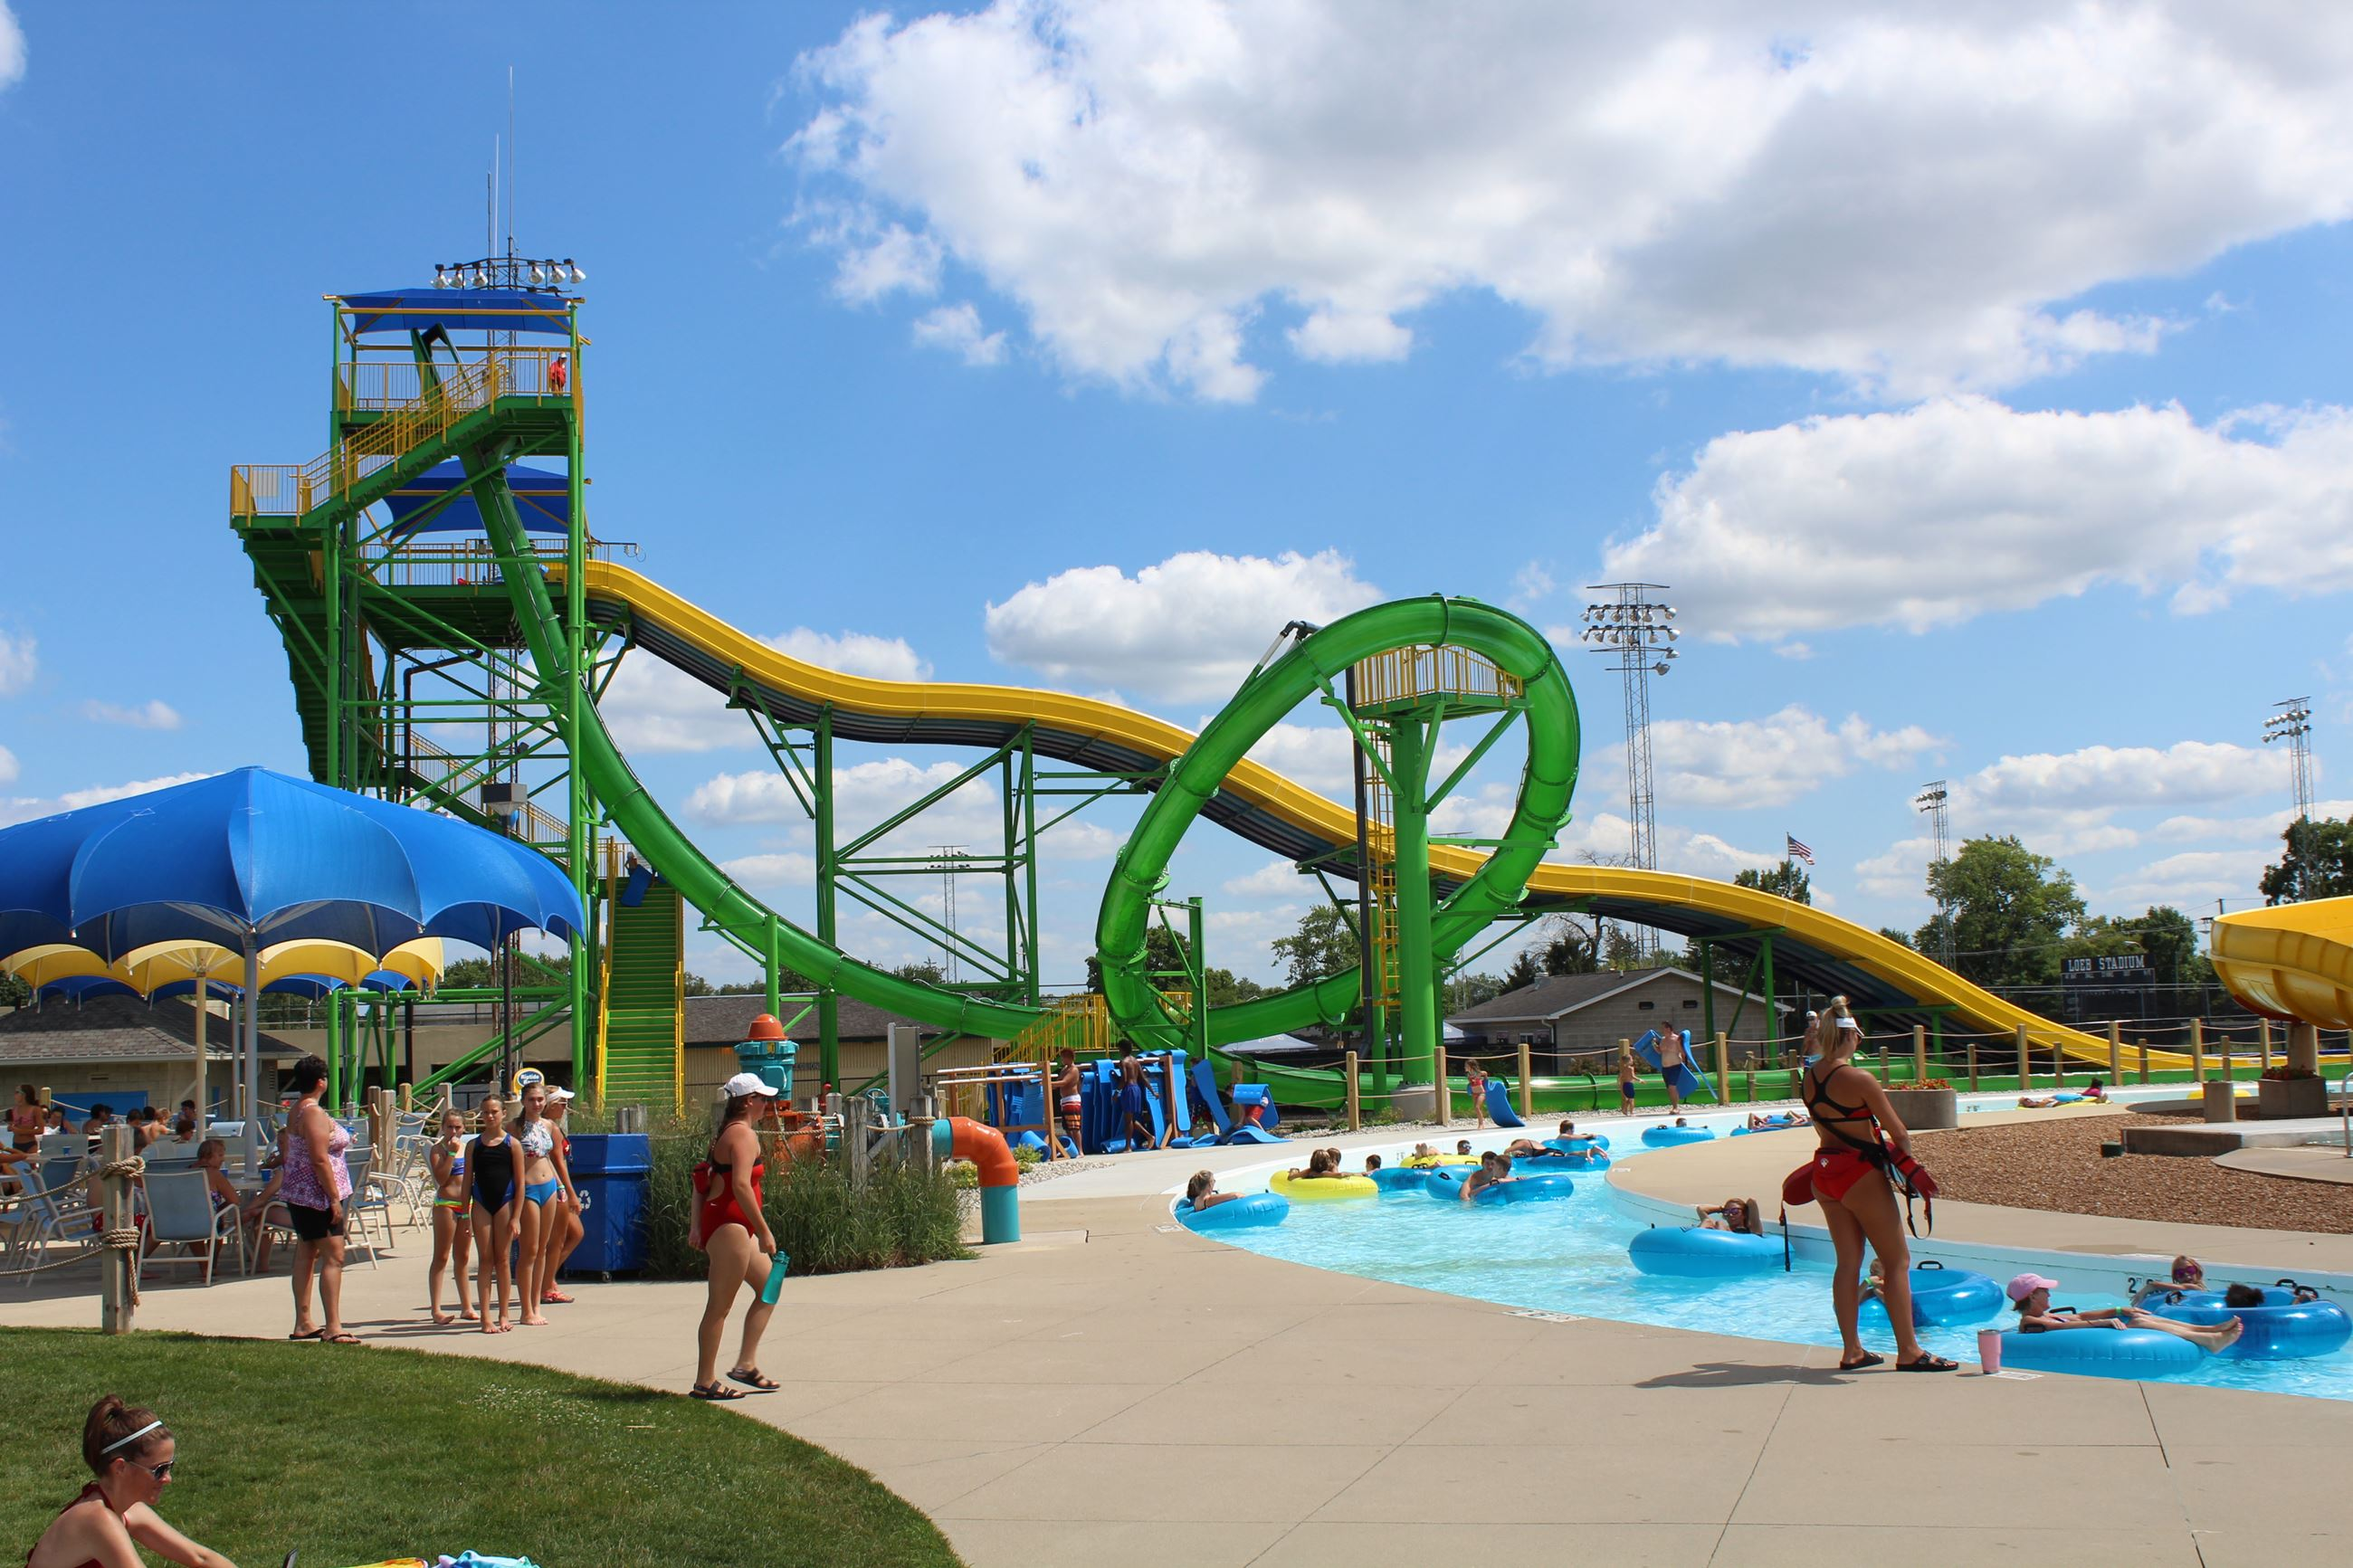 New Water Slides at Columbiann Park - Tropicanoe Cove